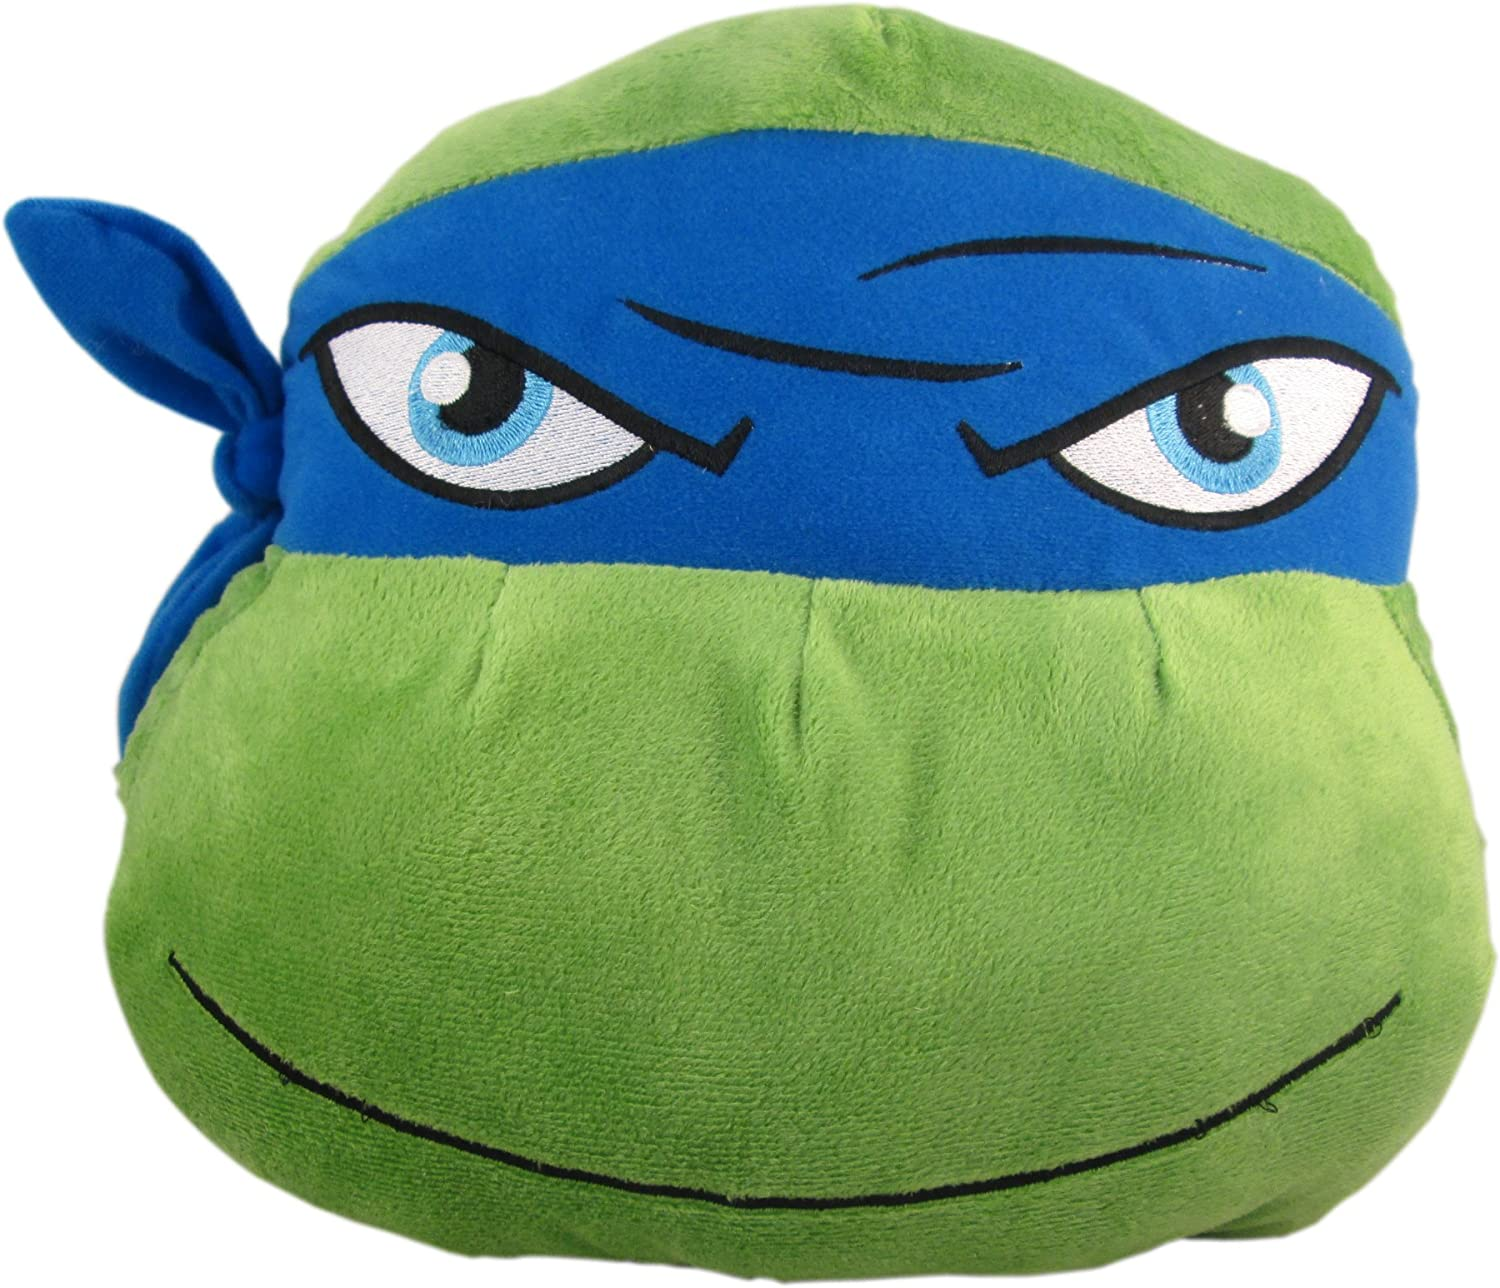 Teenage Mutant Ninja Turtles Leonardo Plush Backpack